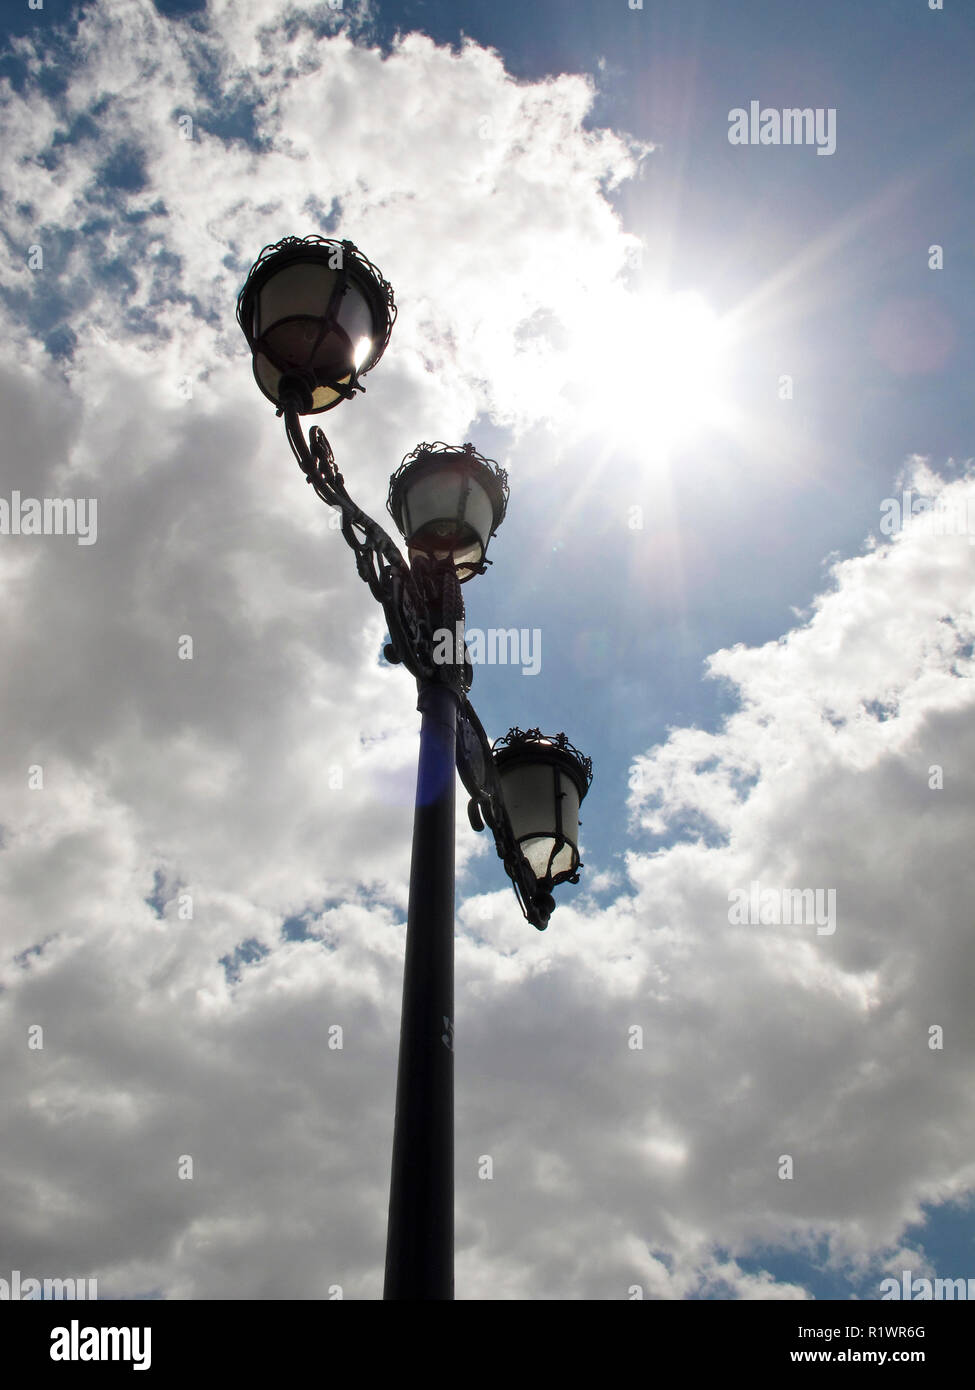 Streetlamp. Sevilla. Andalusia. Spain - Stock Image